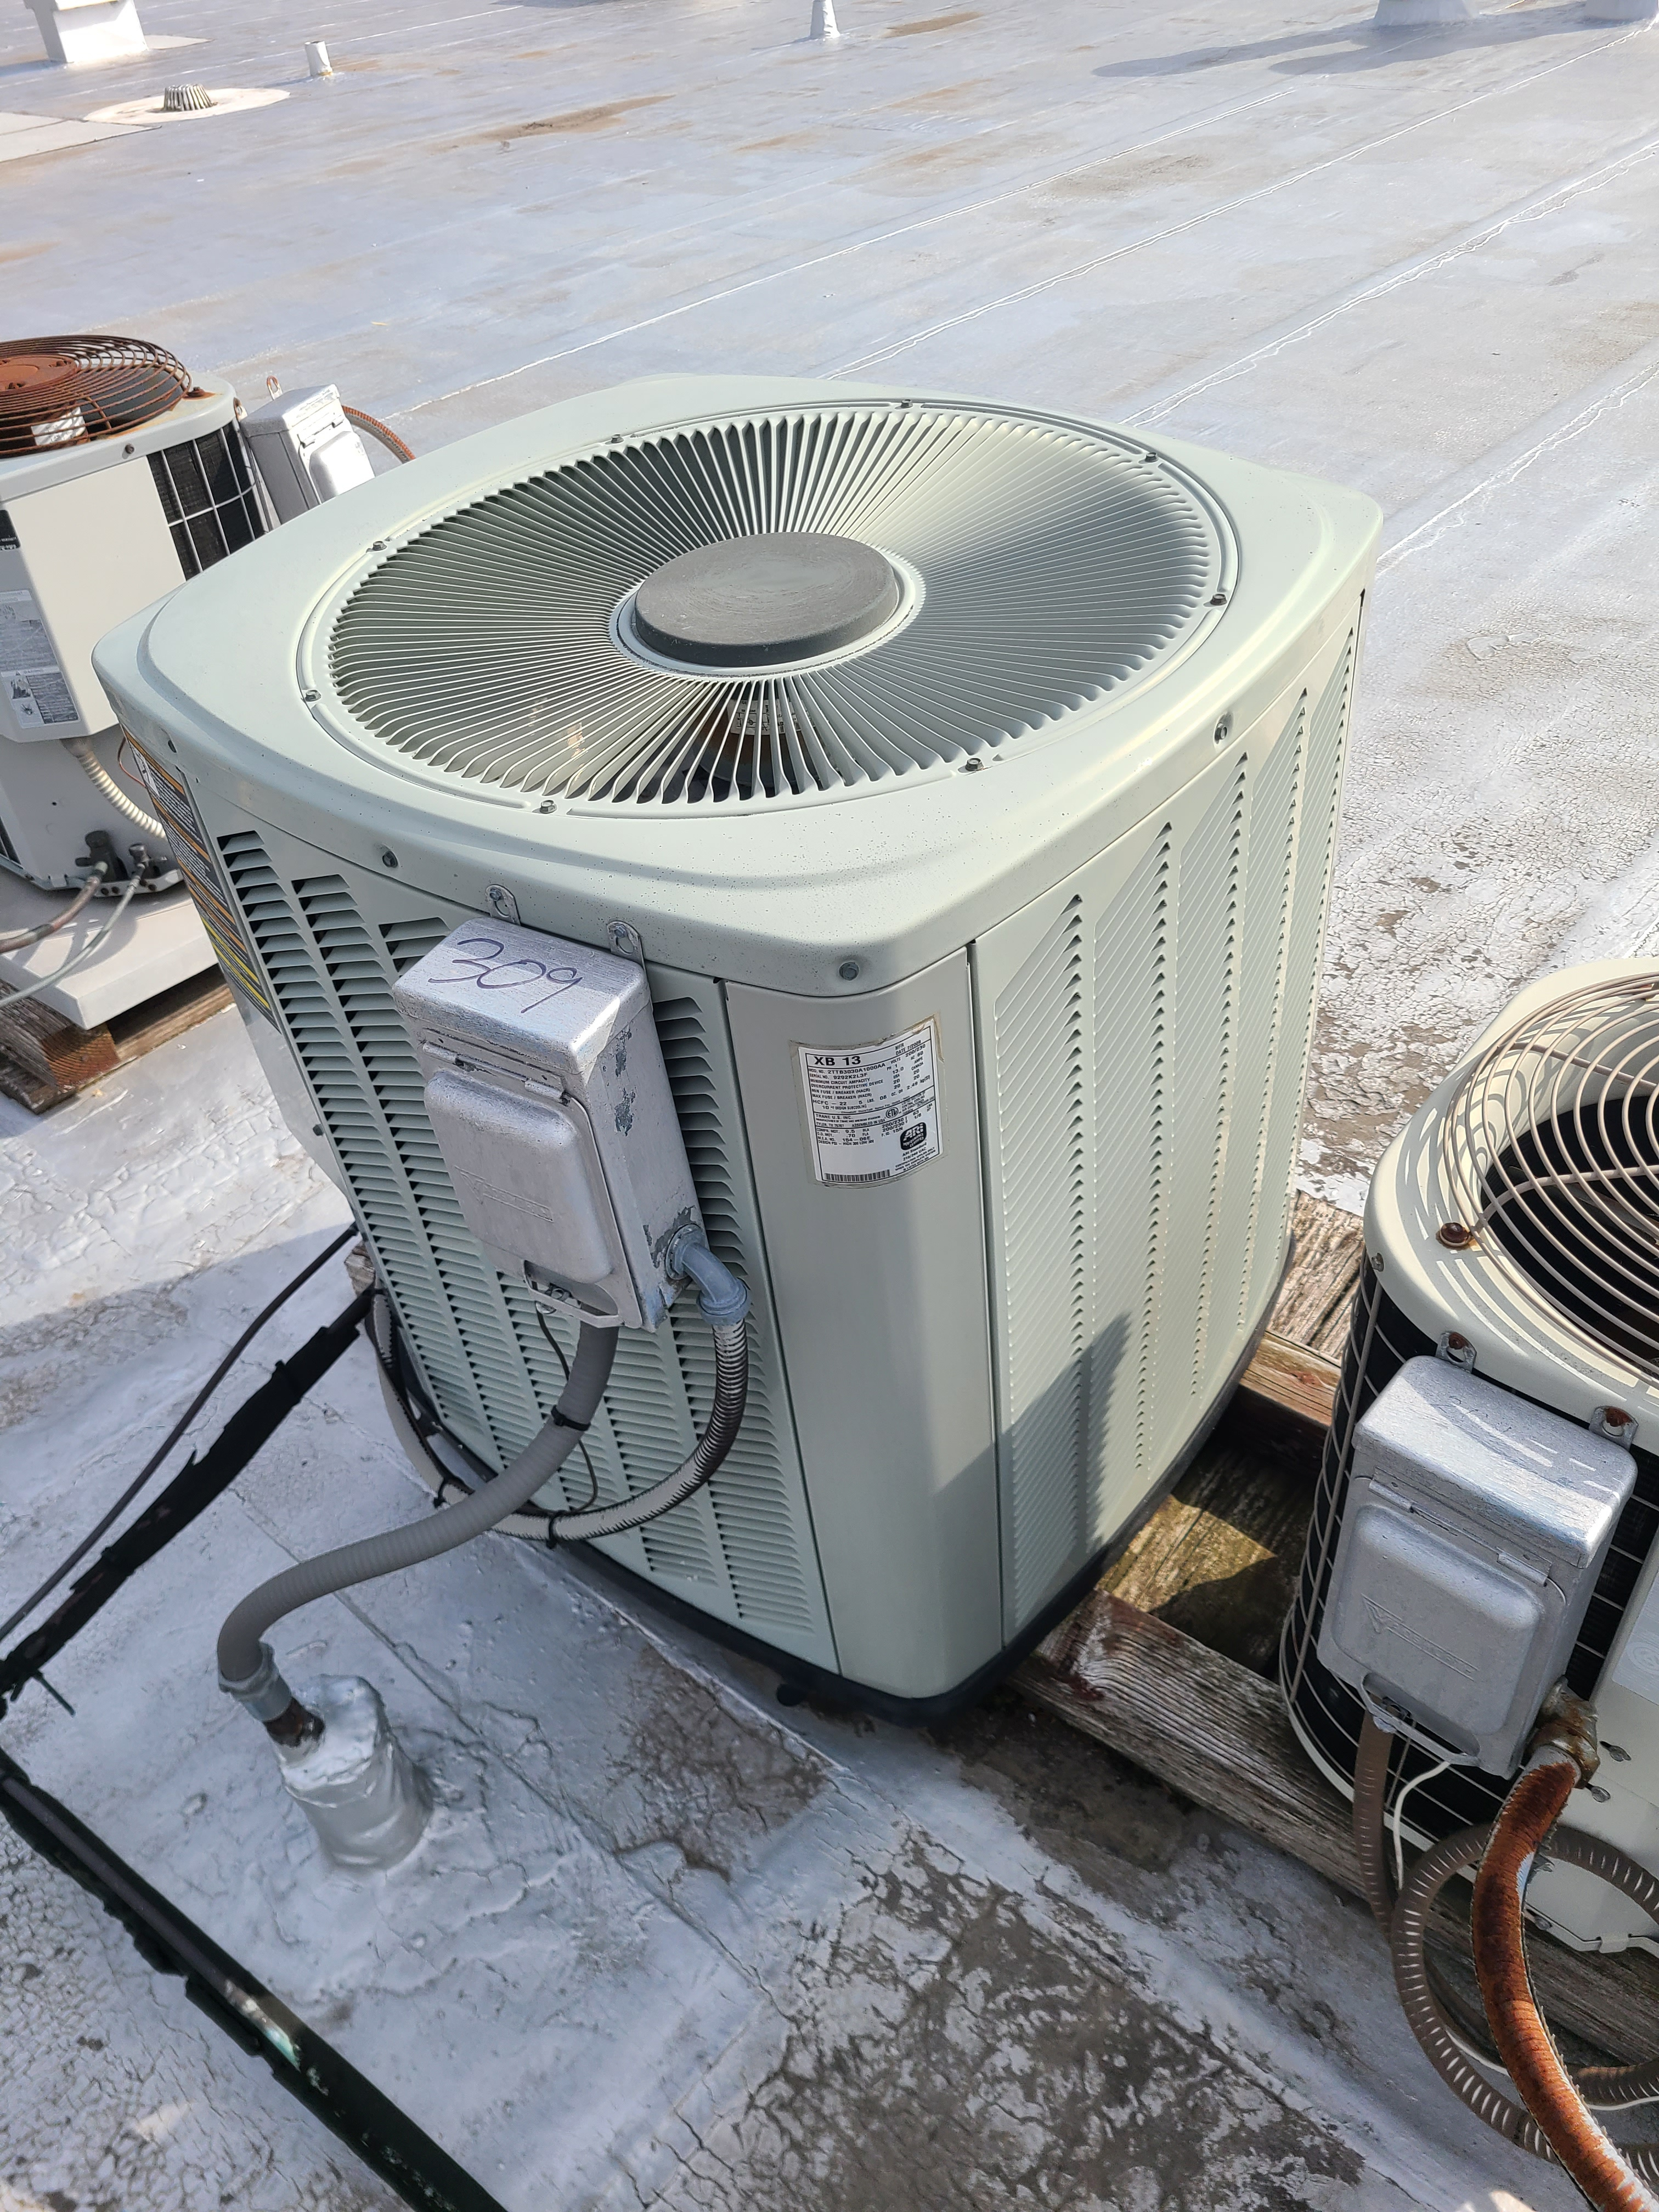 Trane r22 system cleaned and tested...ready for summer operation